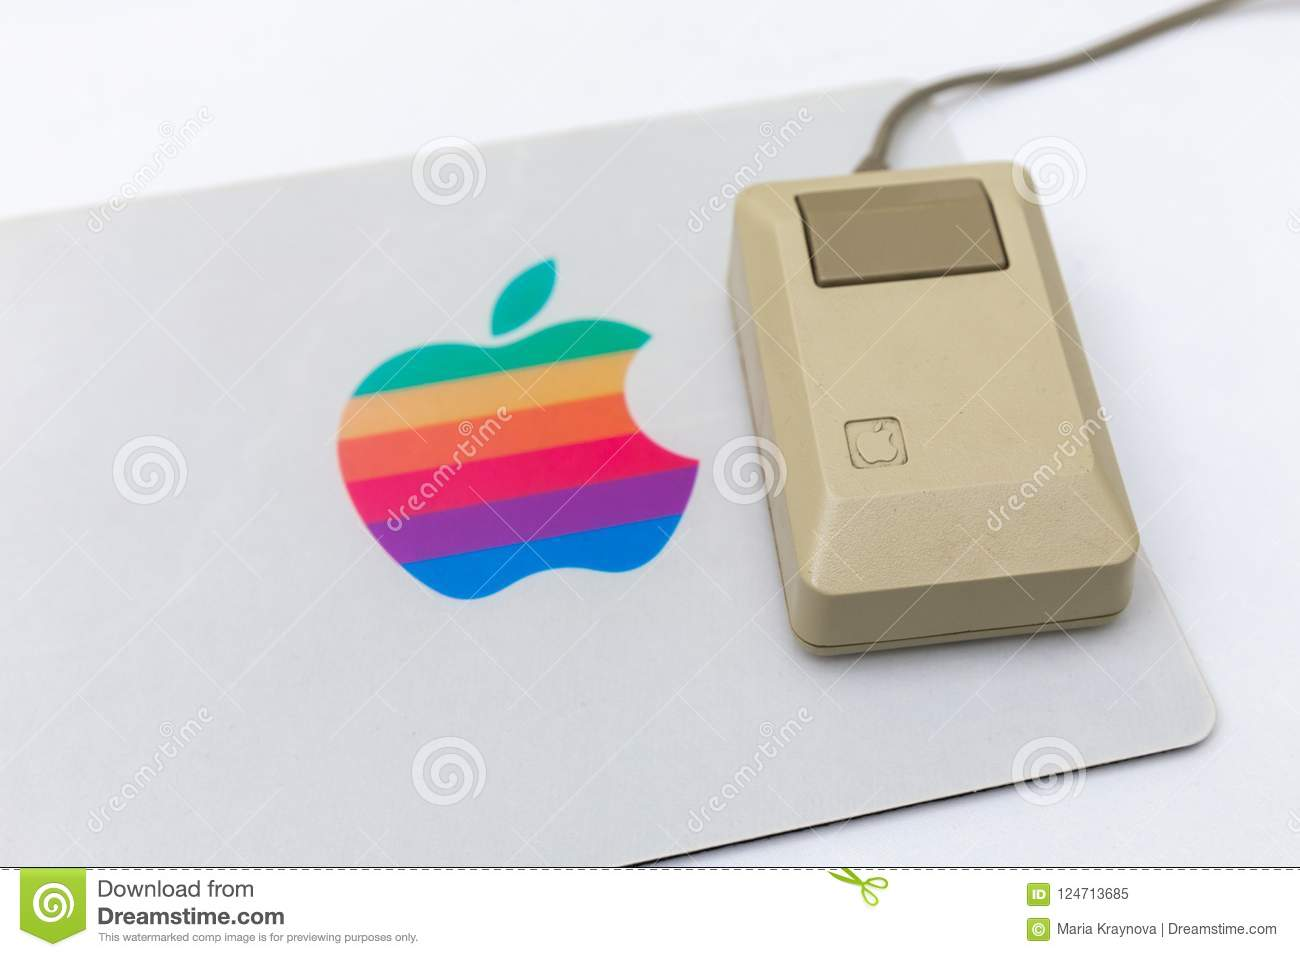 MOSCOW, RUSSIA - JUNE 11, 2018: Old original Apple Mac mouse